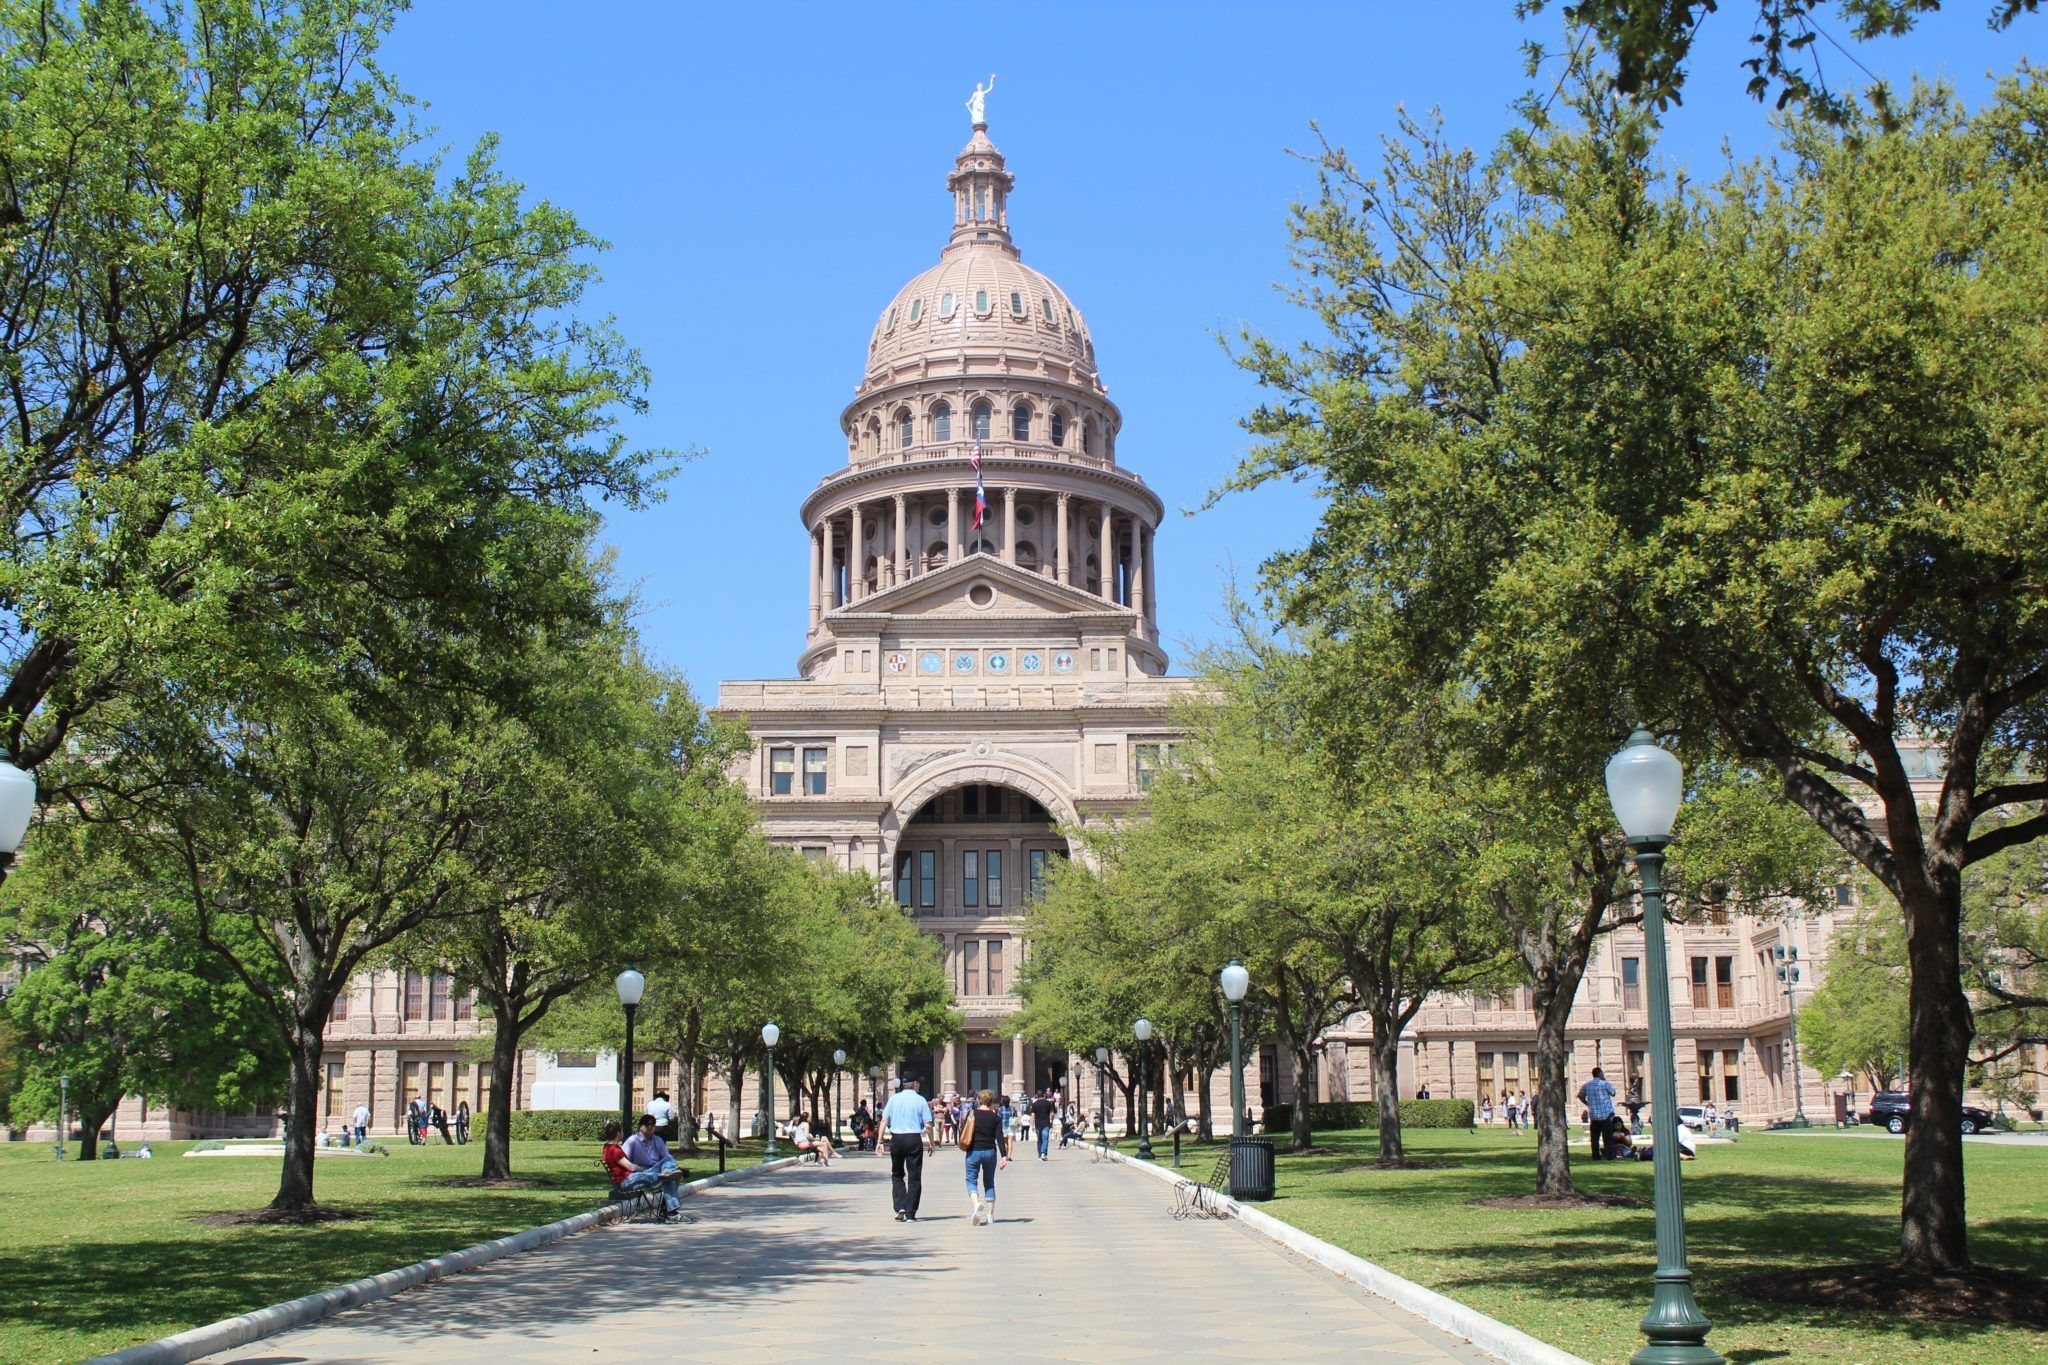 "While the 2018 Farm Bill legalized industrial hemp, Texas still needs to reform its own ""outdated"" statutes, according to attorney Dan Sullivan. Photo: People walk along the tree-lined pathway to the Texas Capitol building, home of the Texas legislature."